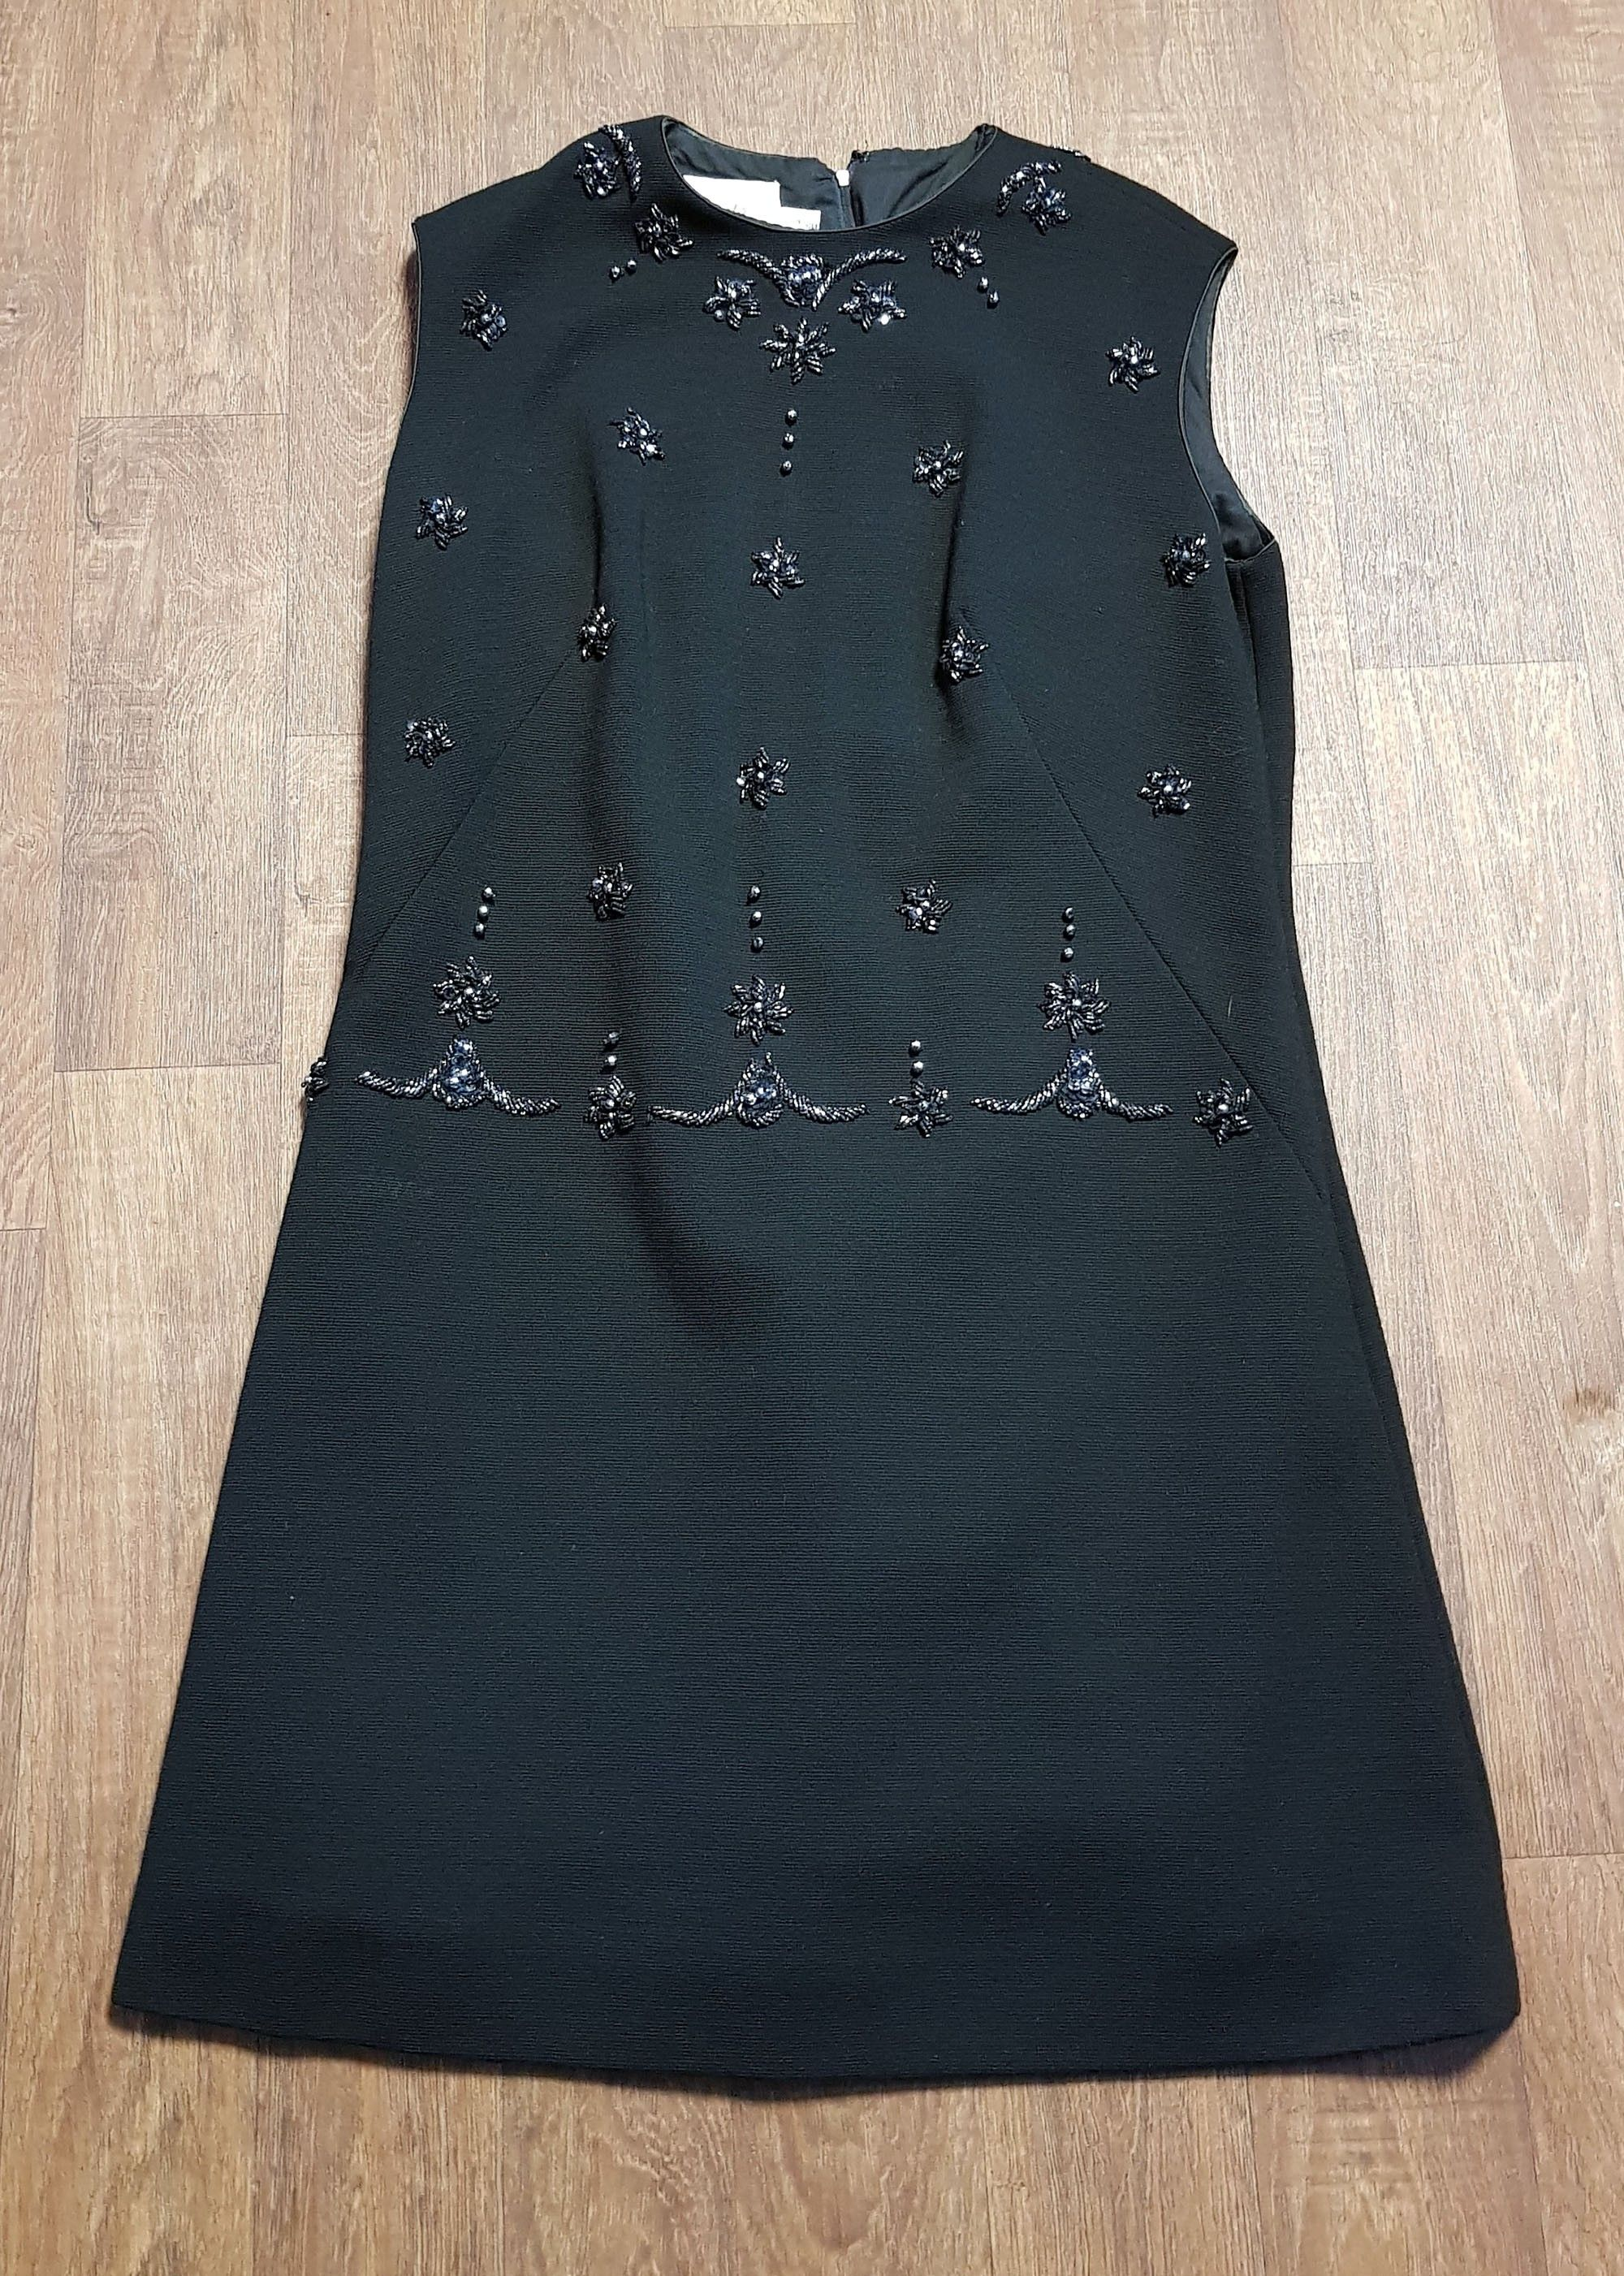 Stunning 1960s Vintage Black Beaded Shift Dress UK Size 16